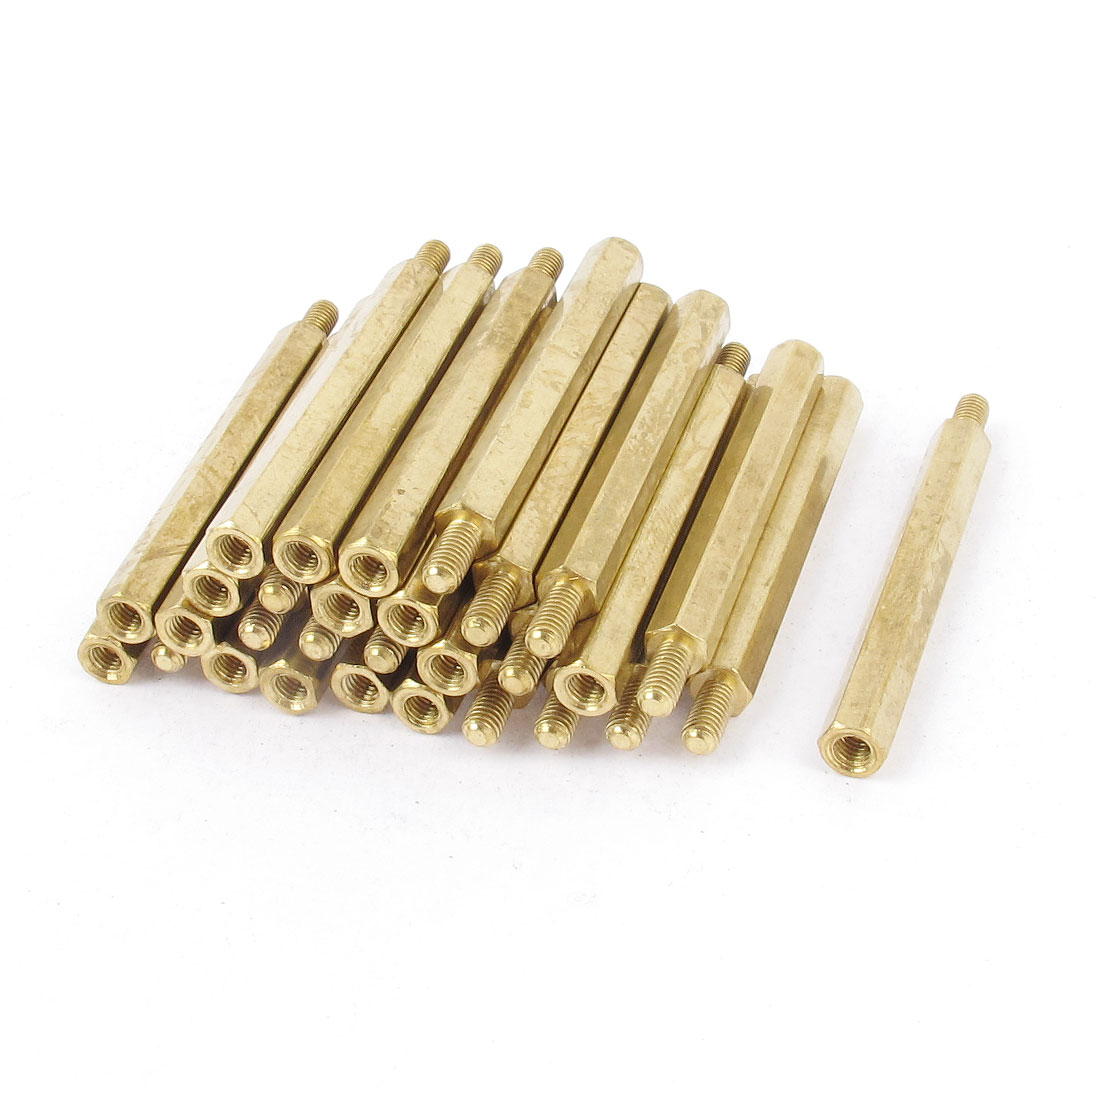 30 Pcs M3 Male-Female Brass PCB Spacer Hex Stand-Off Pillar 40mm